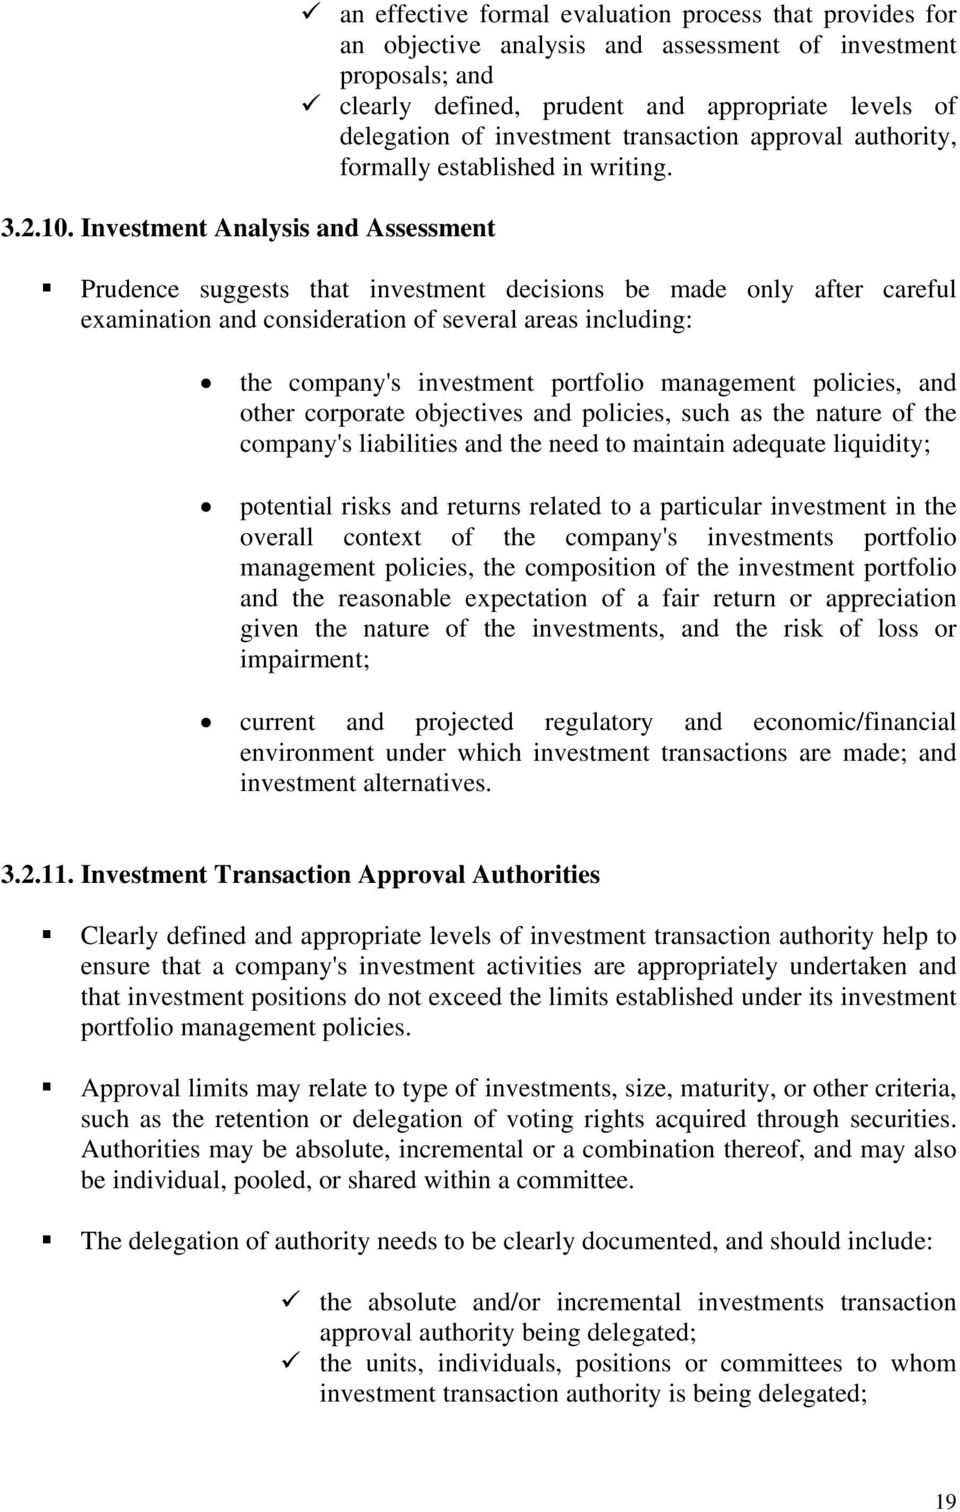 levels of delegation of investment transaction approval authority, formally established in writing.